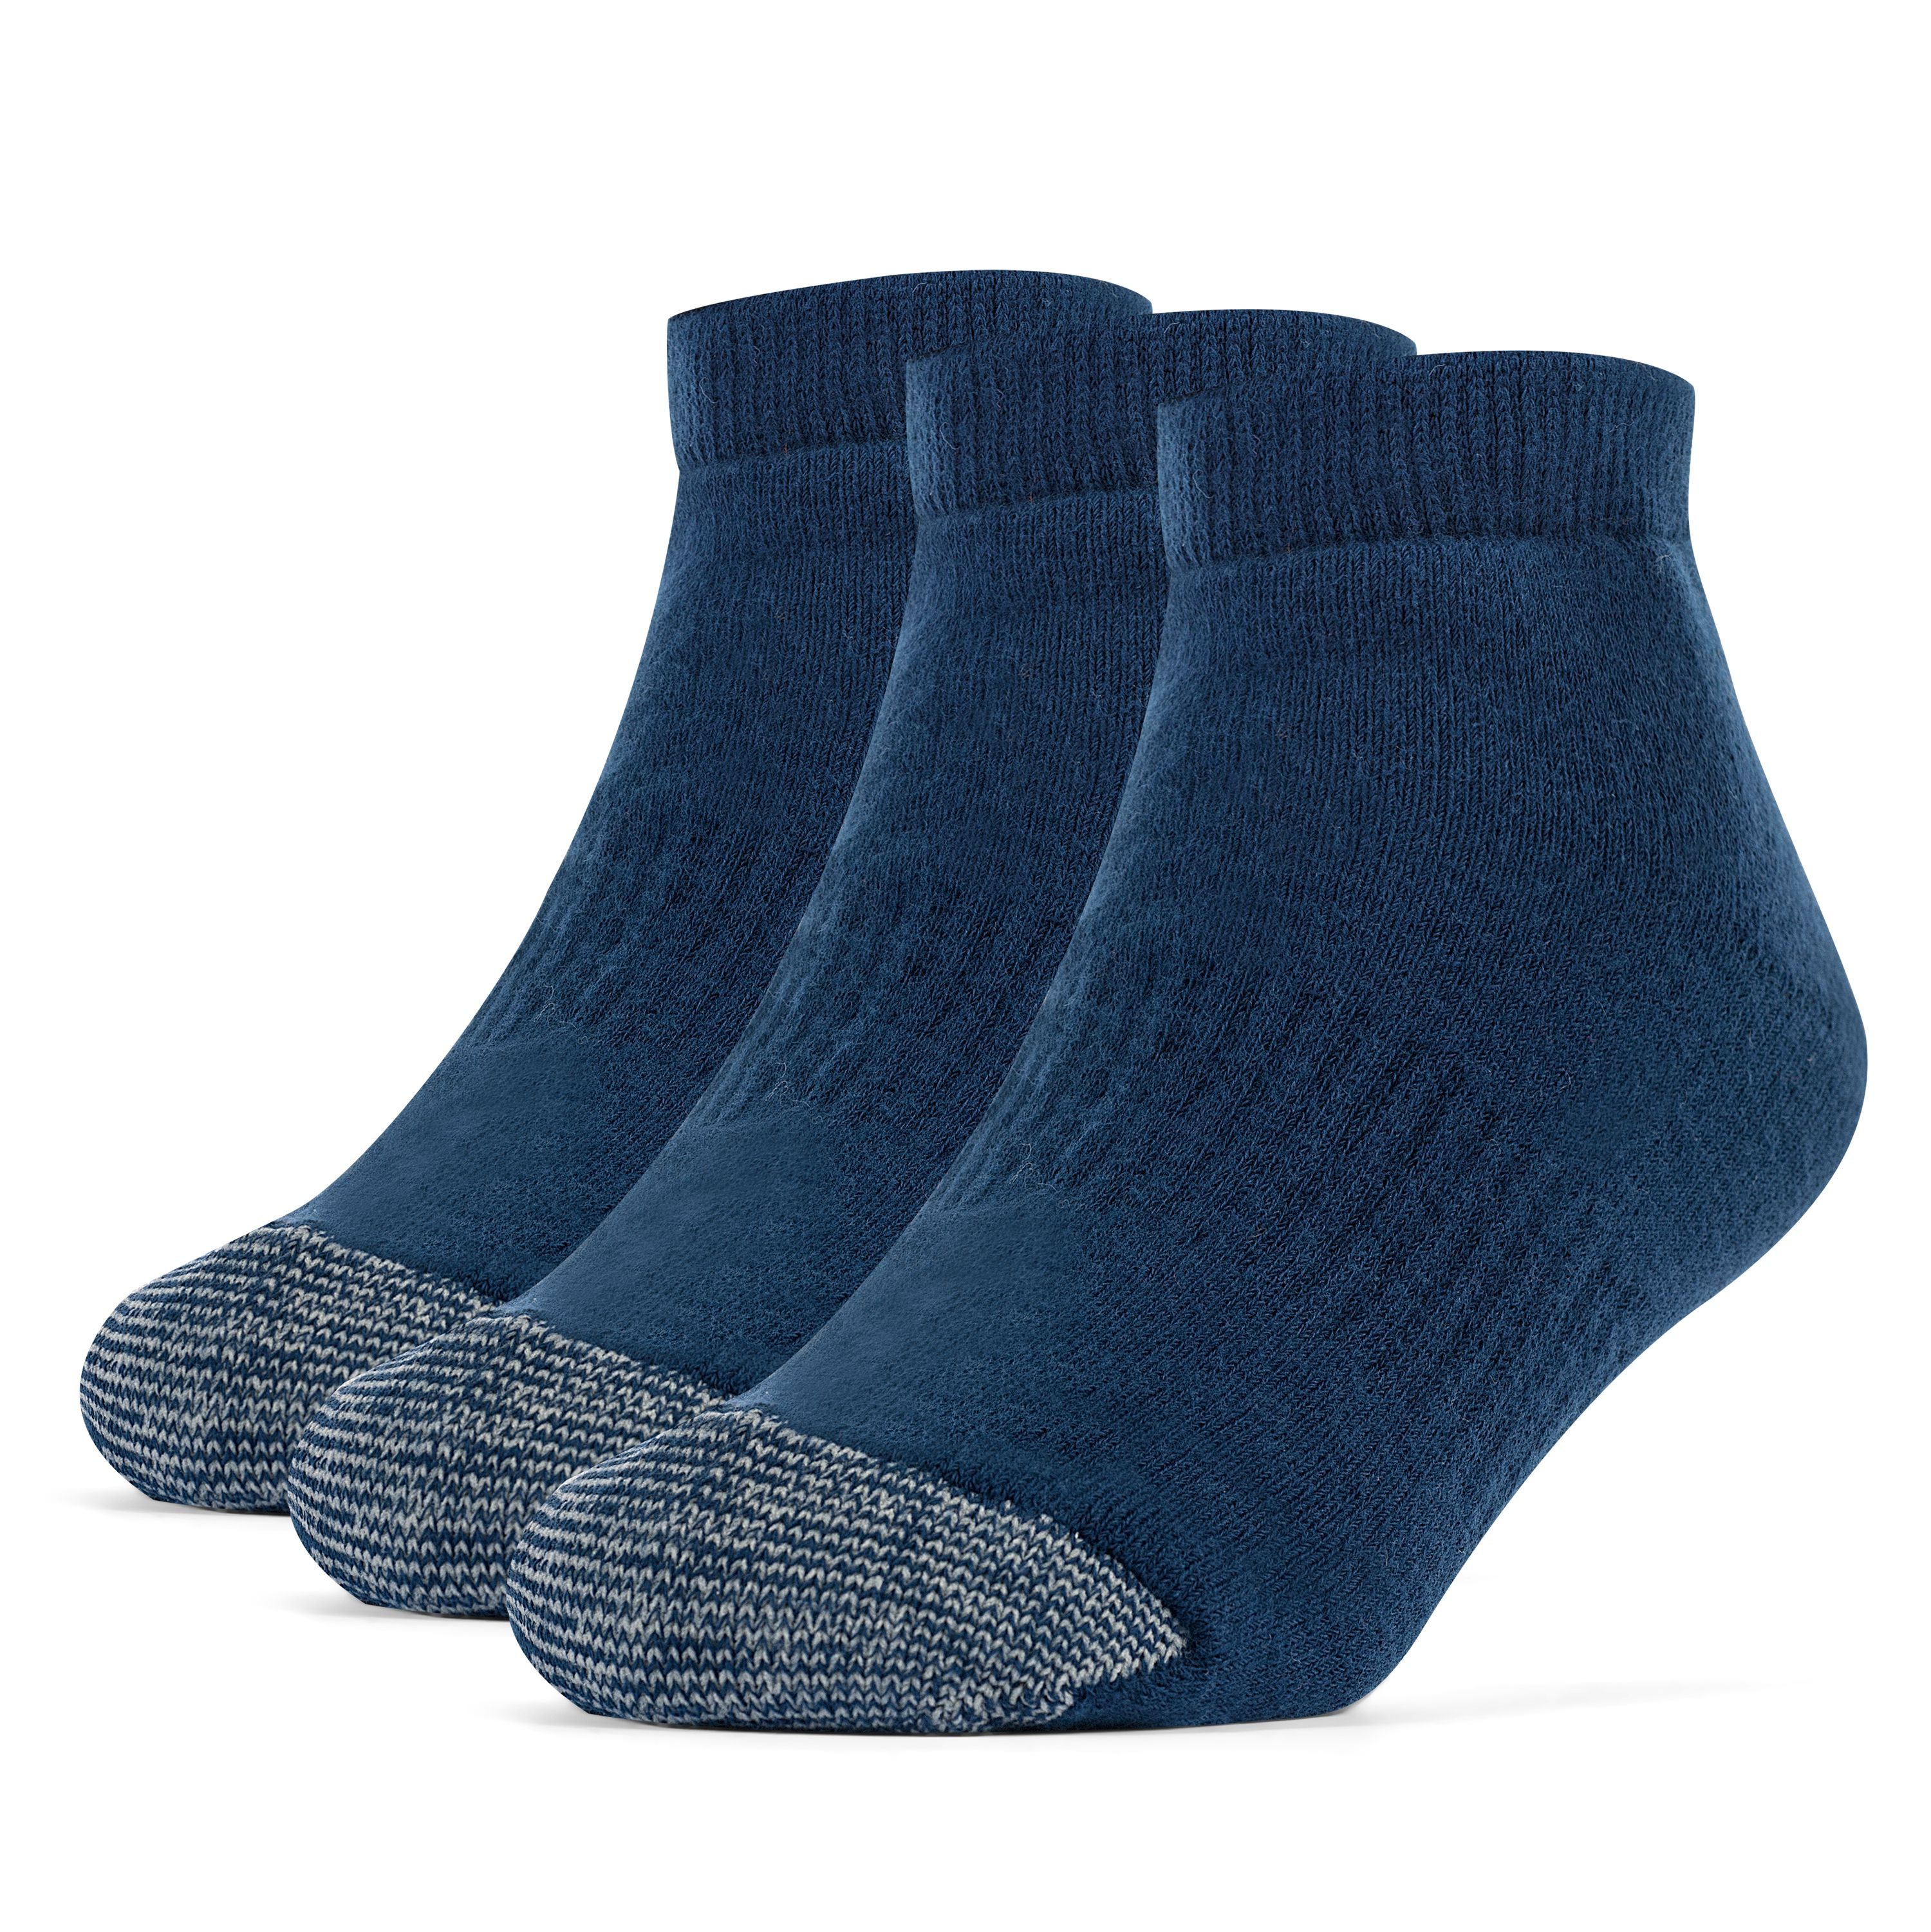 Galiva Girls' Cotton Extra Soft Low Cut Cushion Socks - 3 Pairs